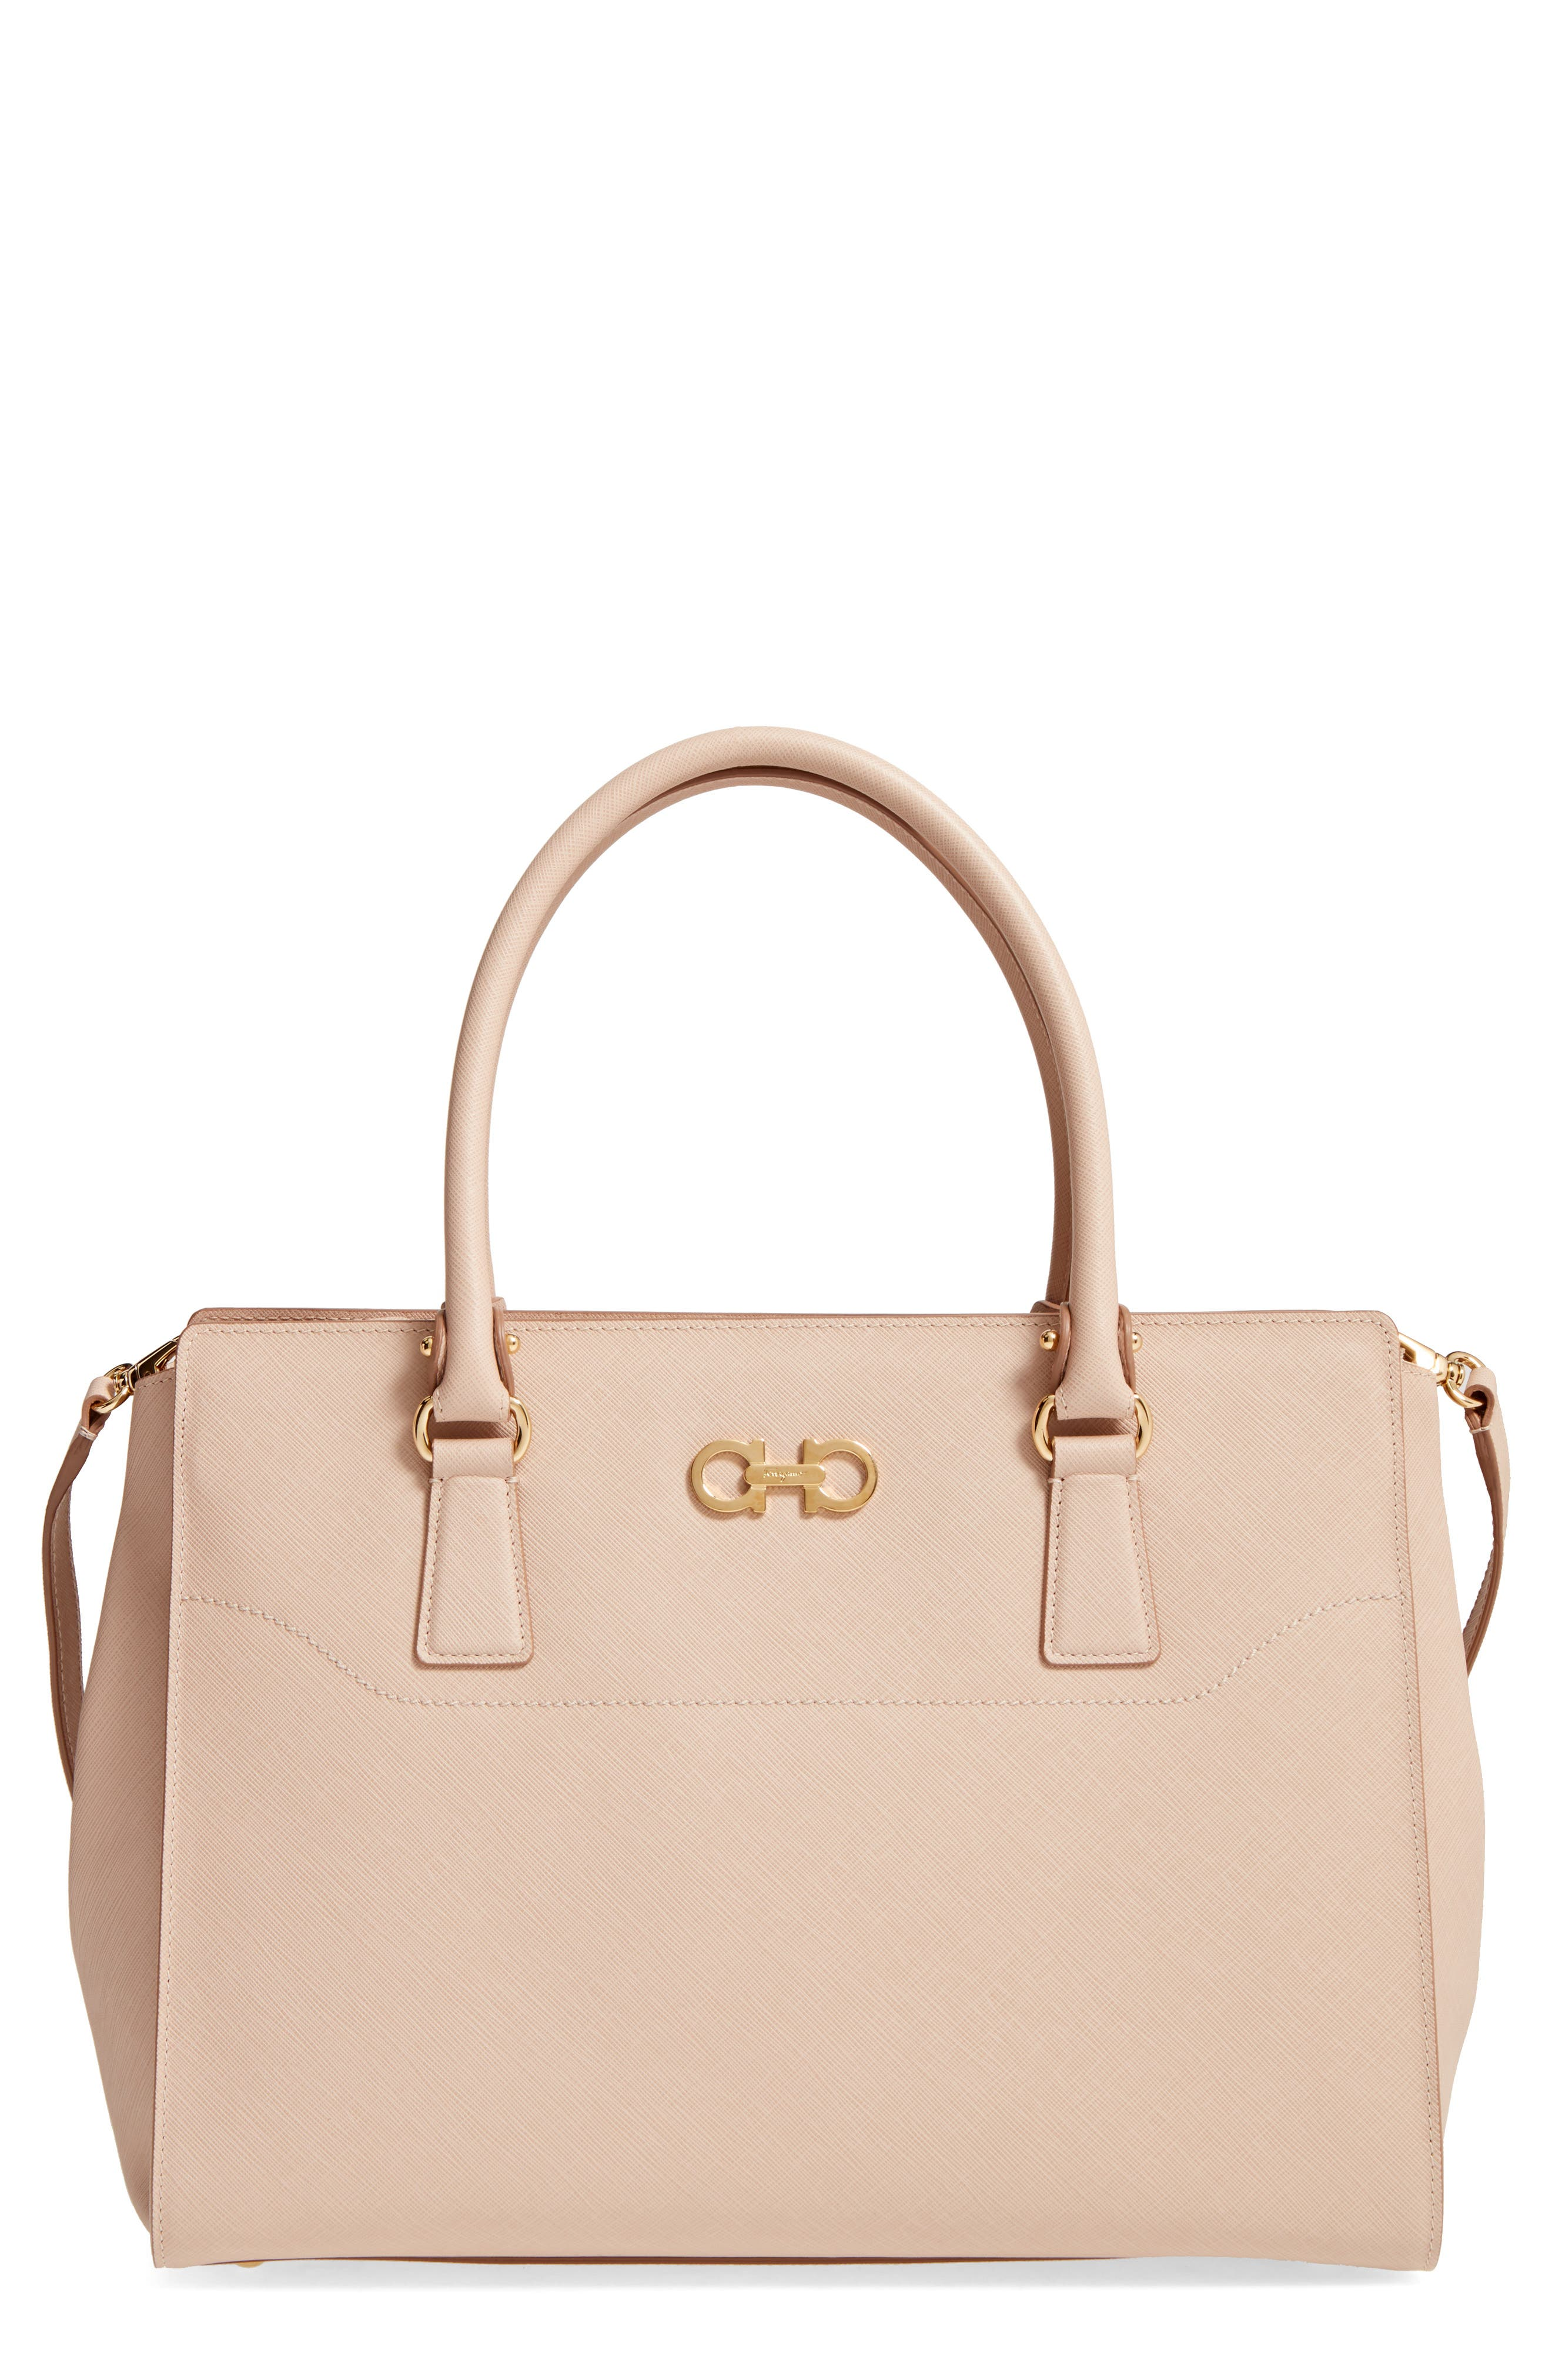 Saffiano Leather Tote,                             Main thumbnail 1, color,                             New Bisque Macaron